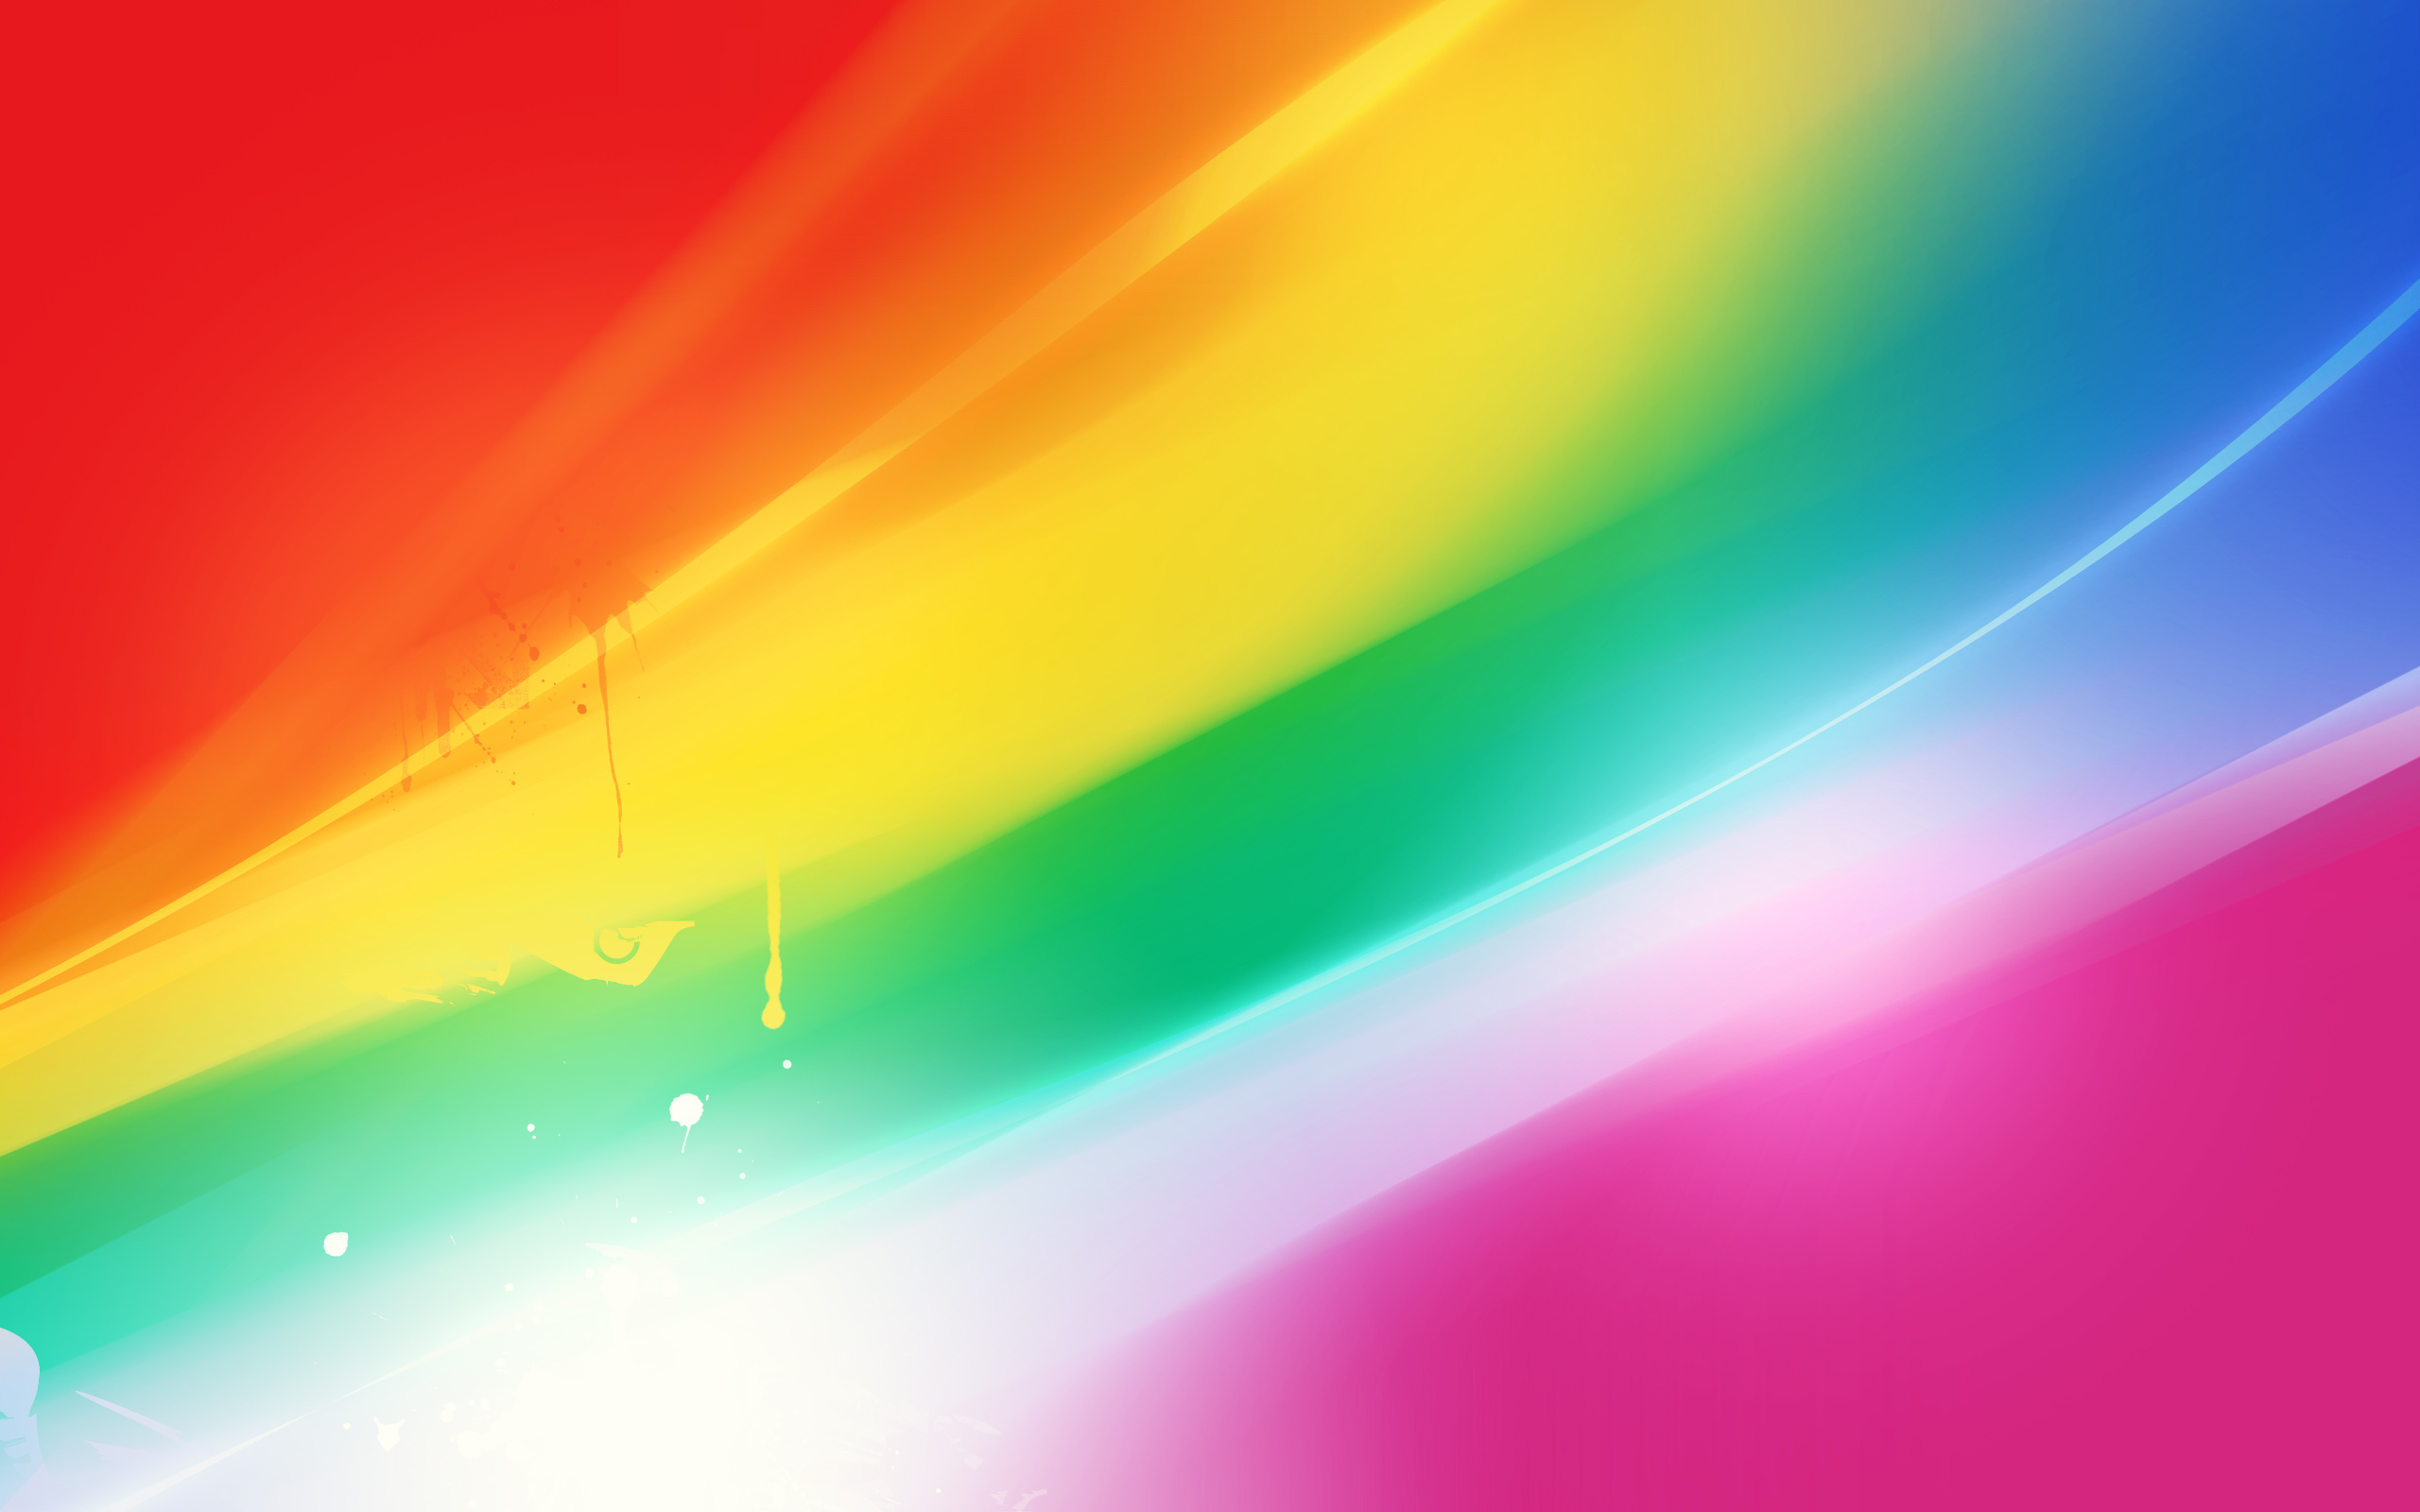 Colorful Abstraction Wallpapers HD Wallpapers 2560x1600